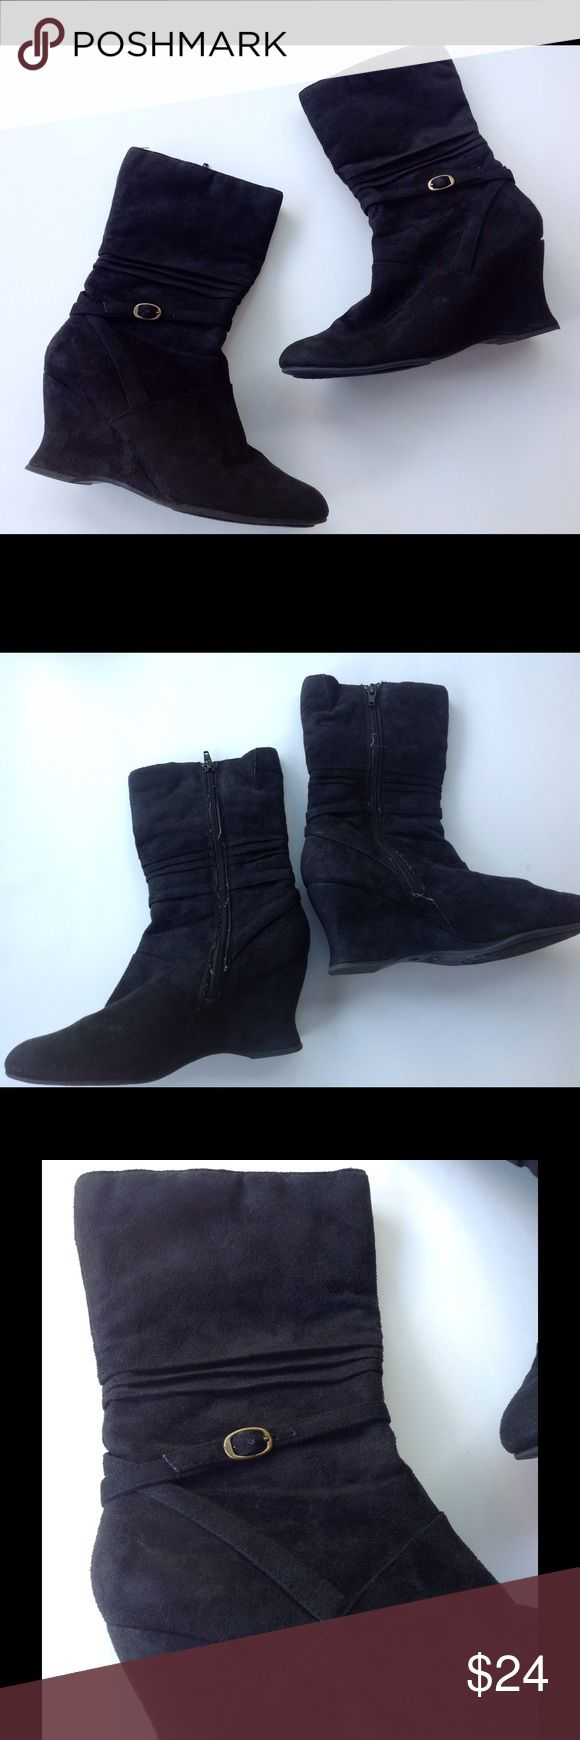 """Covergirl Black Wedge Heel Boots Very cute black wedge boots with buckle detail. Size zip. Heel measures approx 3"""" . Excellent conditon! Covergirl Shoes Heeled Boots"""